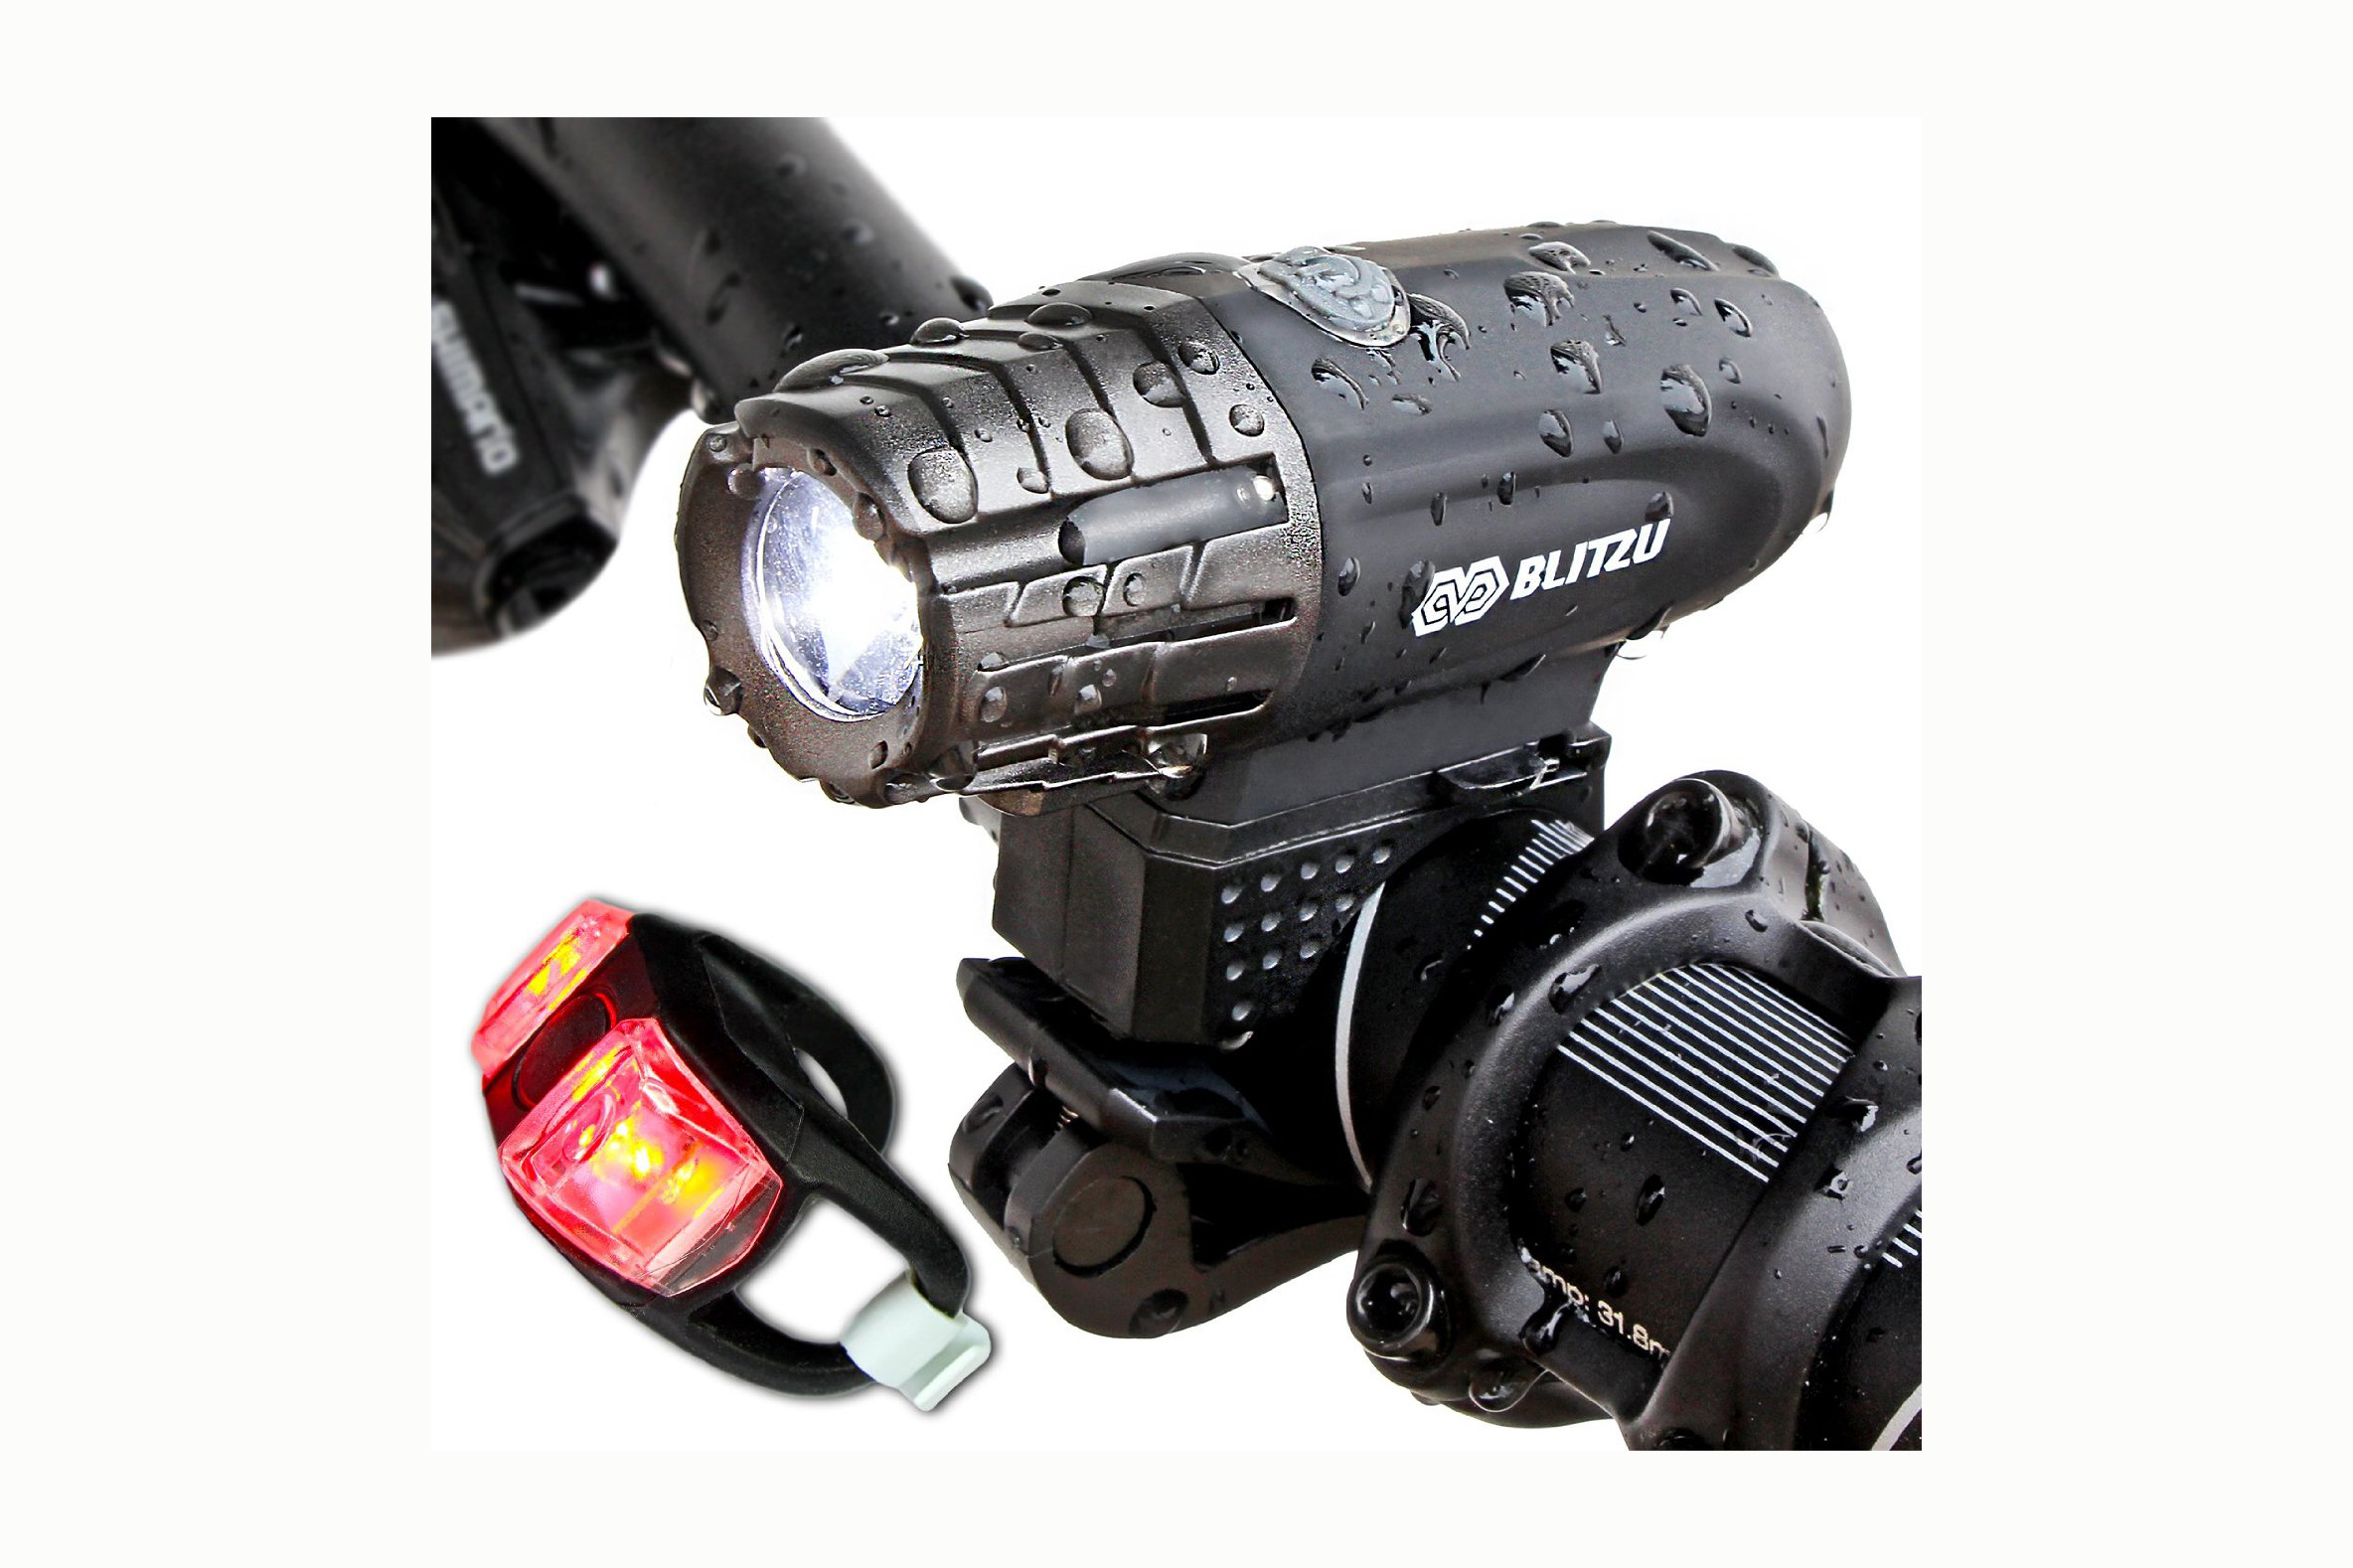 320 Lumens,USB Rechargeable, + Taillight - 4.5 stars - $25 (Prime)